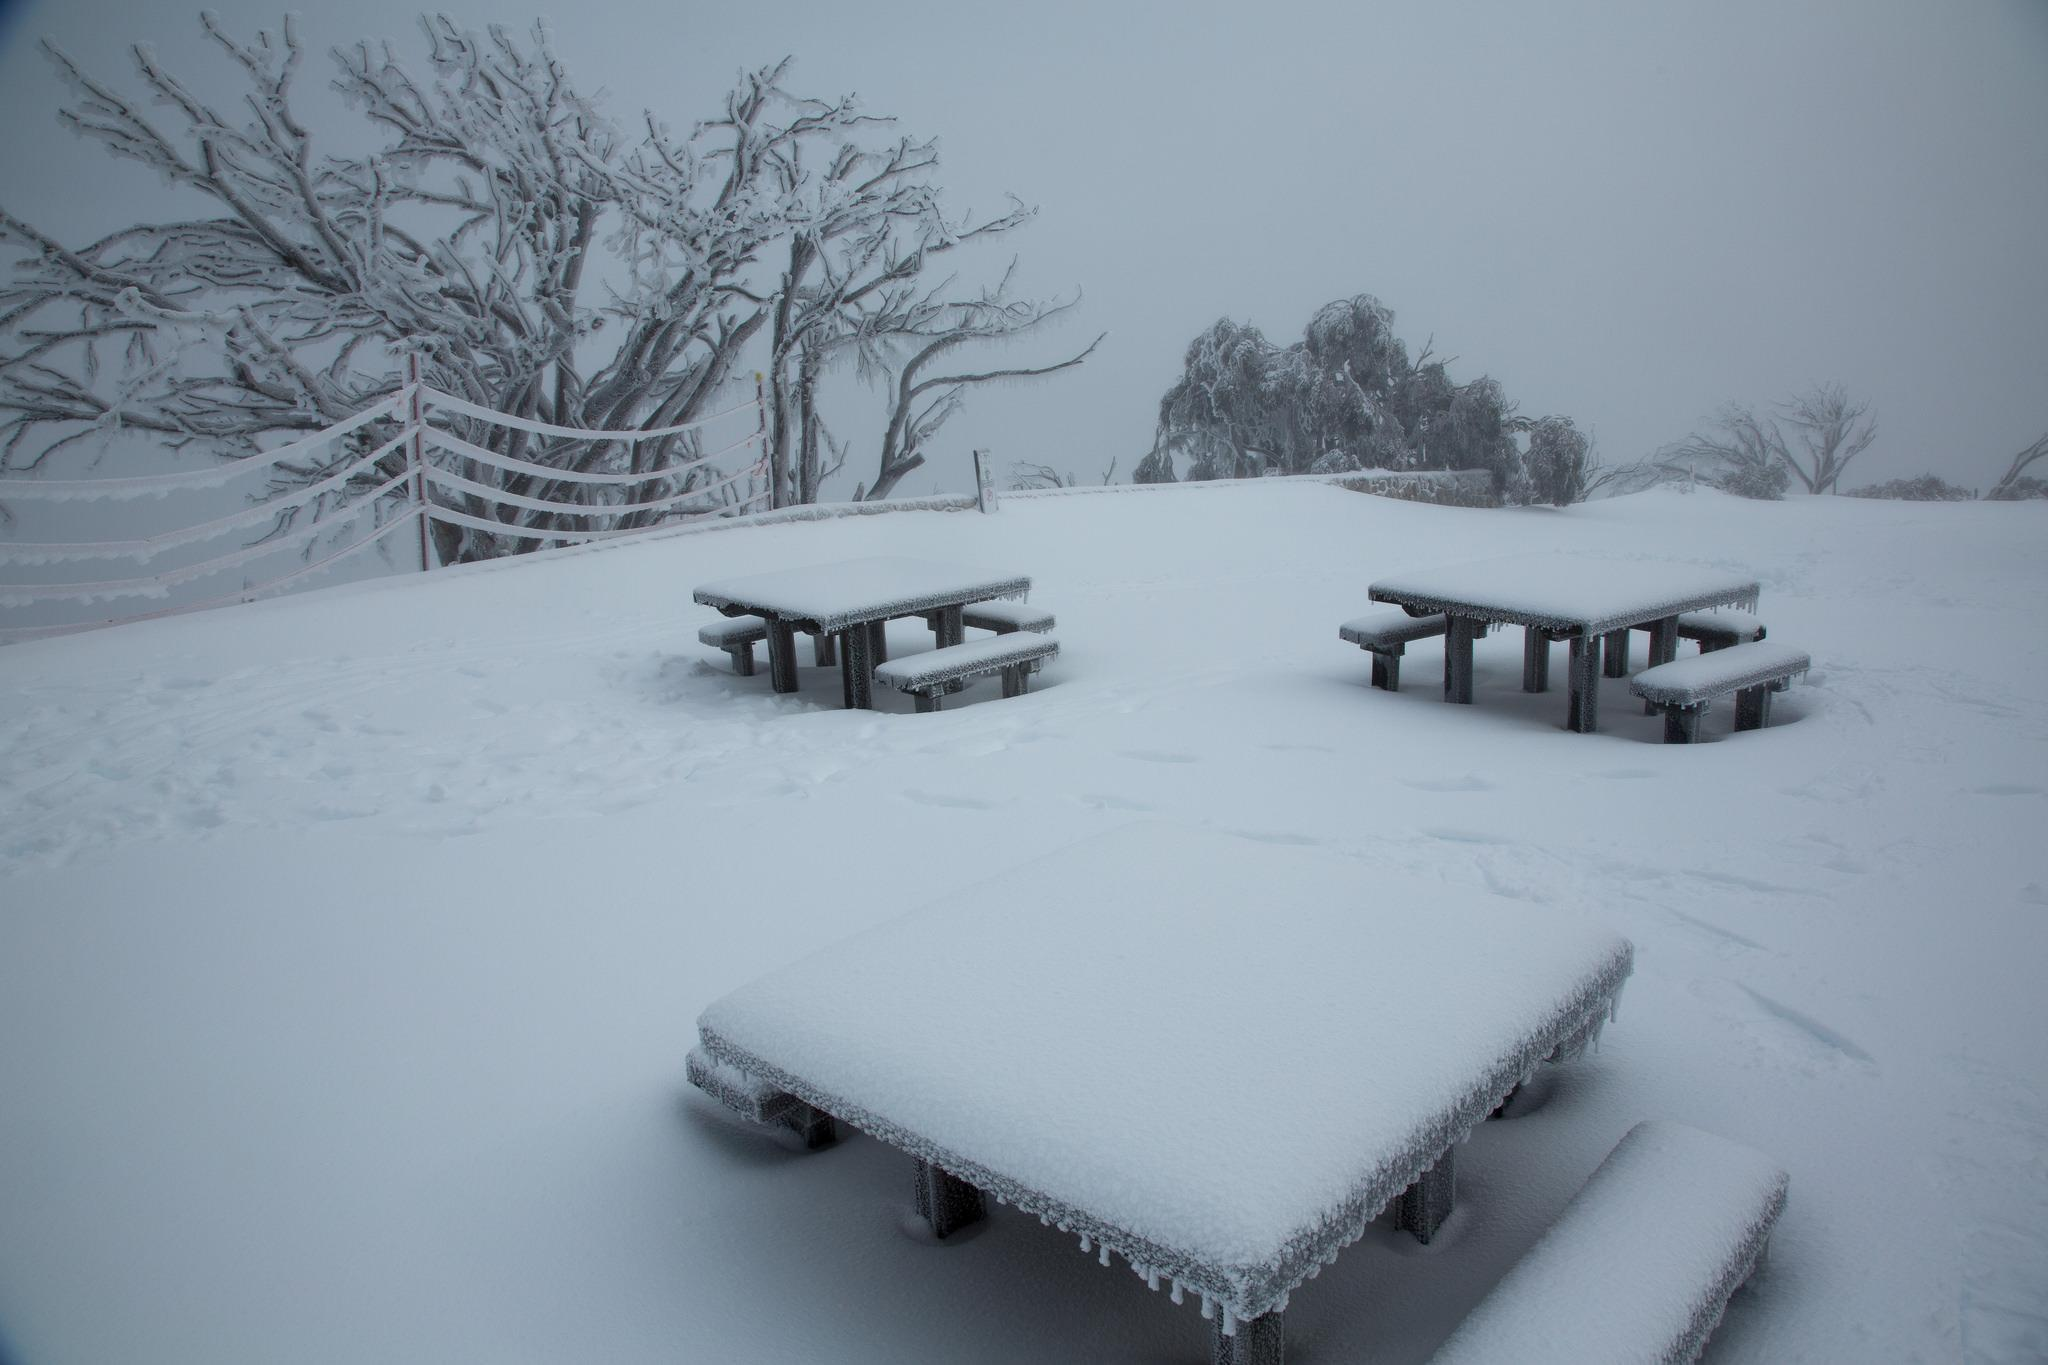 Snow cover in Mount Buffalo, Victoria